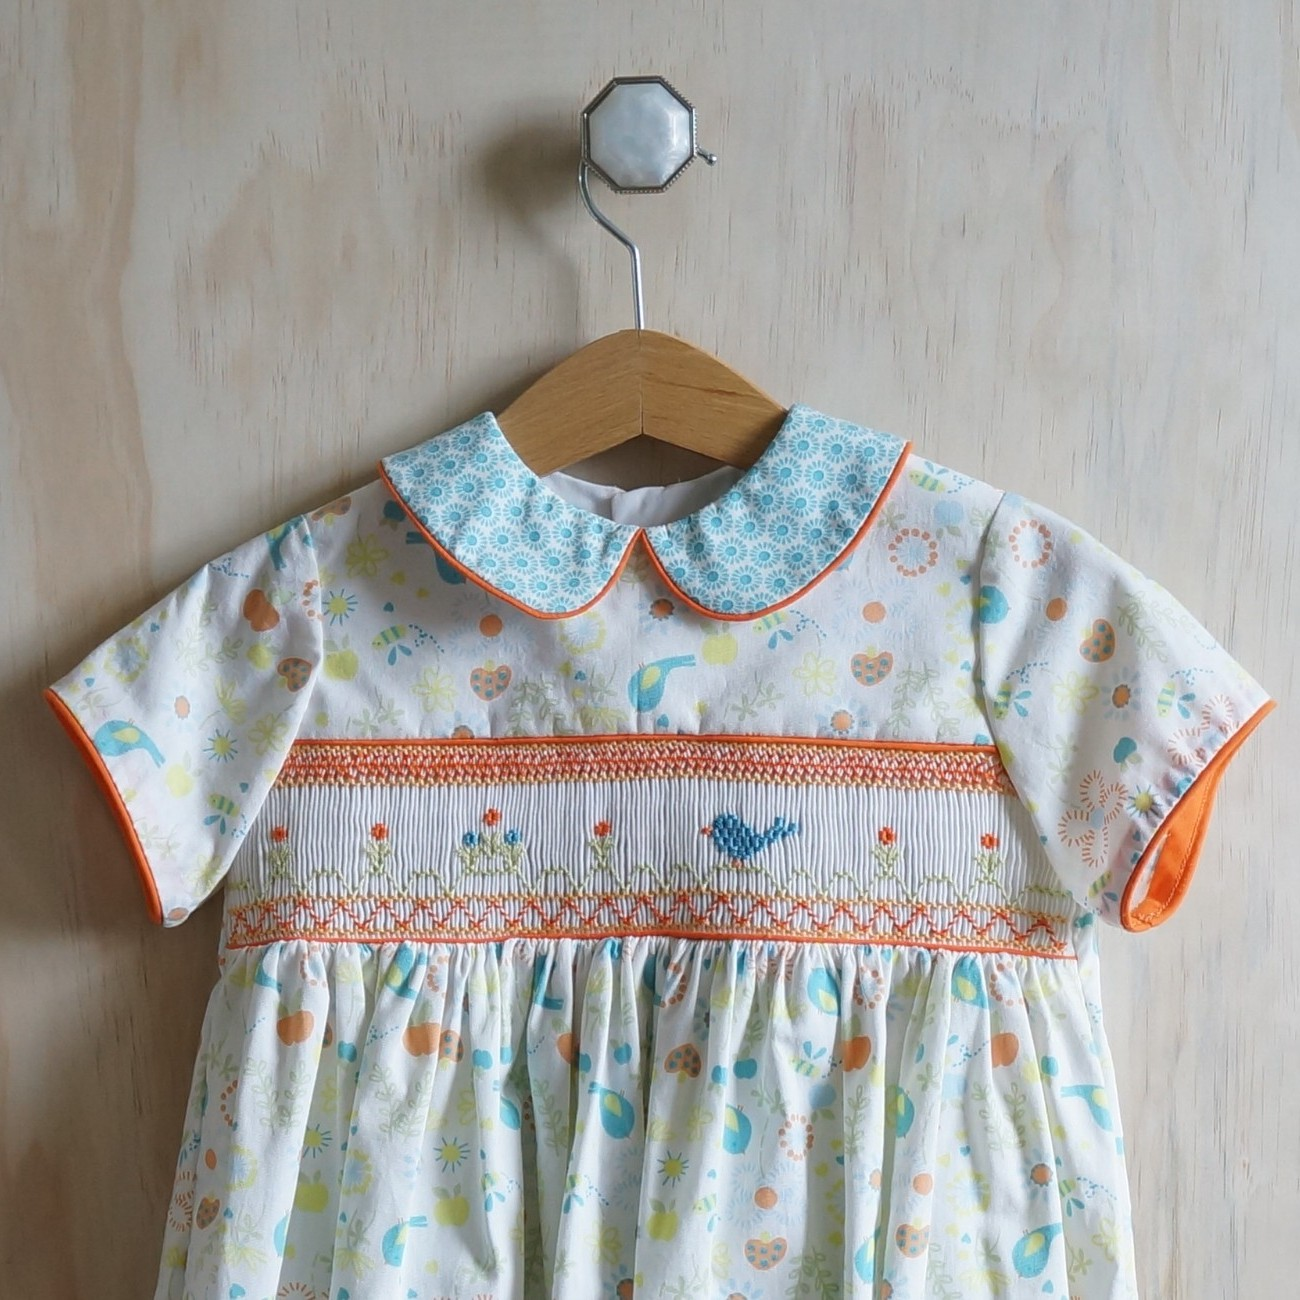 Adding a Smocked Insert to a Pattern